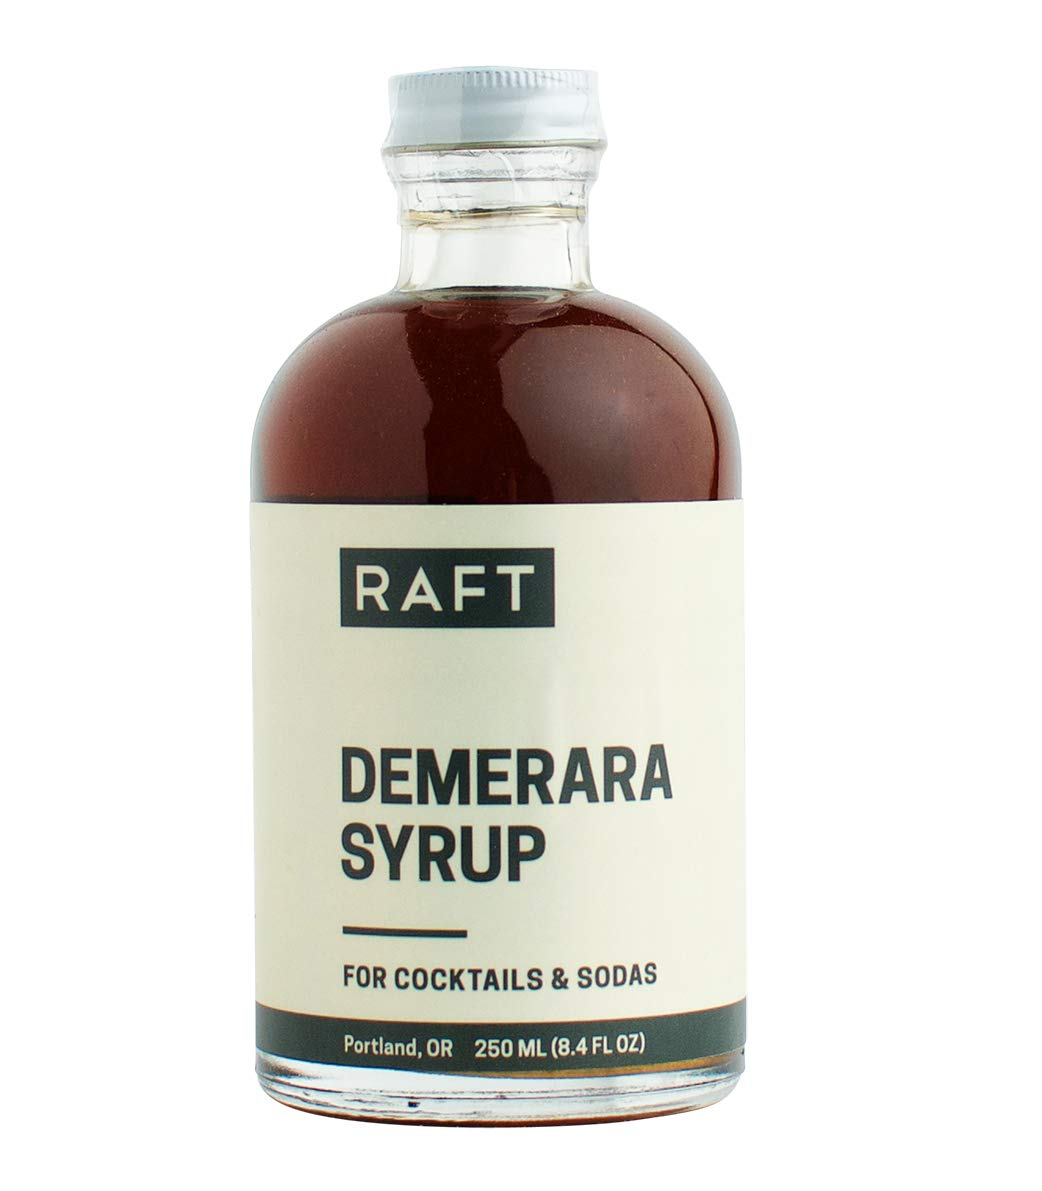 RAFT Demerara Syrup for Cocktails and Sodas, 250ml